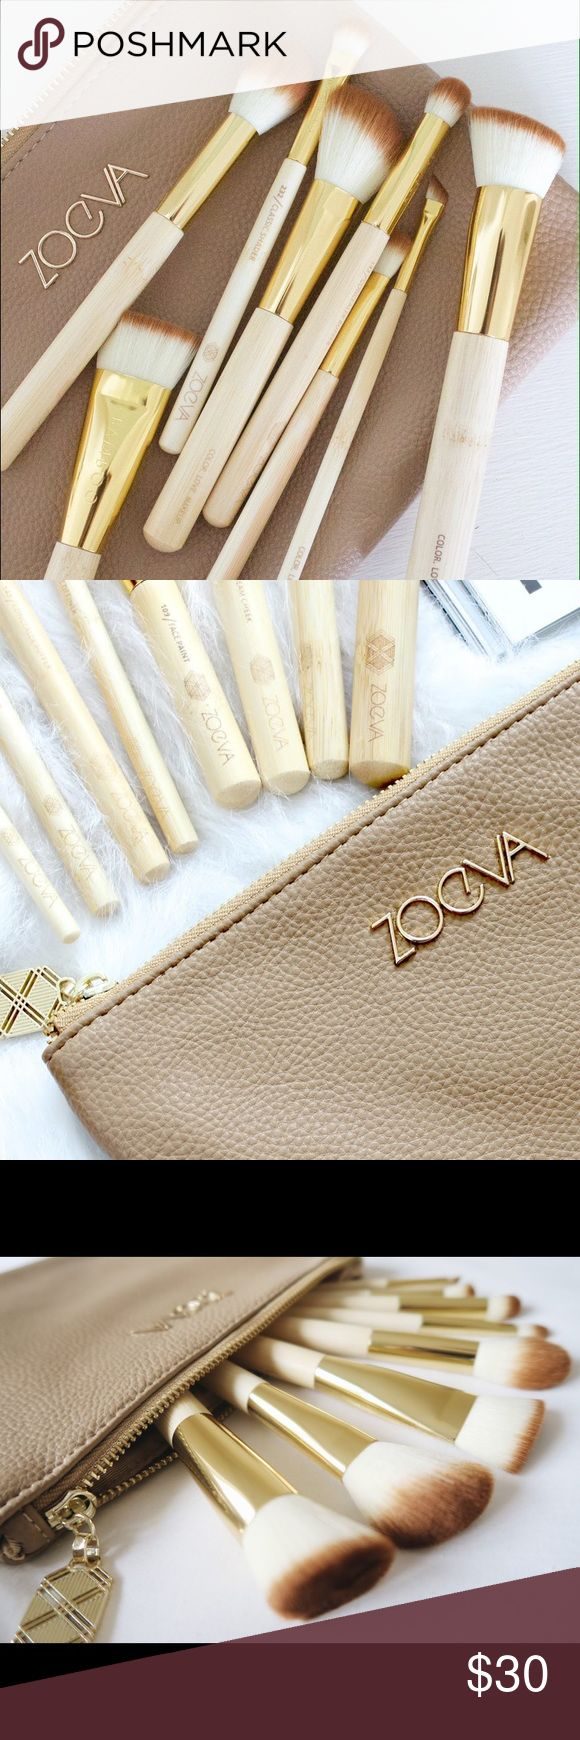 Zoeva bamboo vol.2 brush set-NWT FACTORYSEALED never used- factory sealed in package comes with 8 brushes and zoeva bag - 128 cream cheek brush,103 defined buffer brush,109 face paint brush,105 highlight brush,142 concealer, buffer brush, 317 wing liner brush,232 classic shader brush,227 soft definer brush zoeva Makeup Brushes & Tools